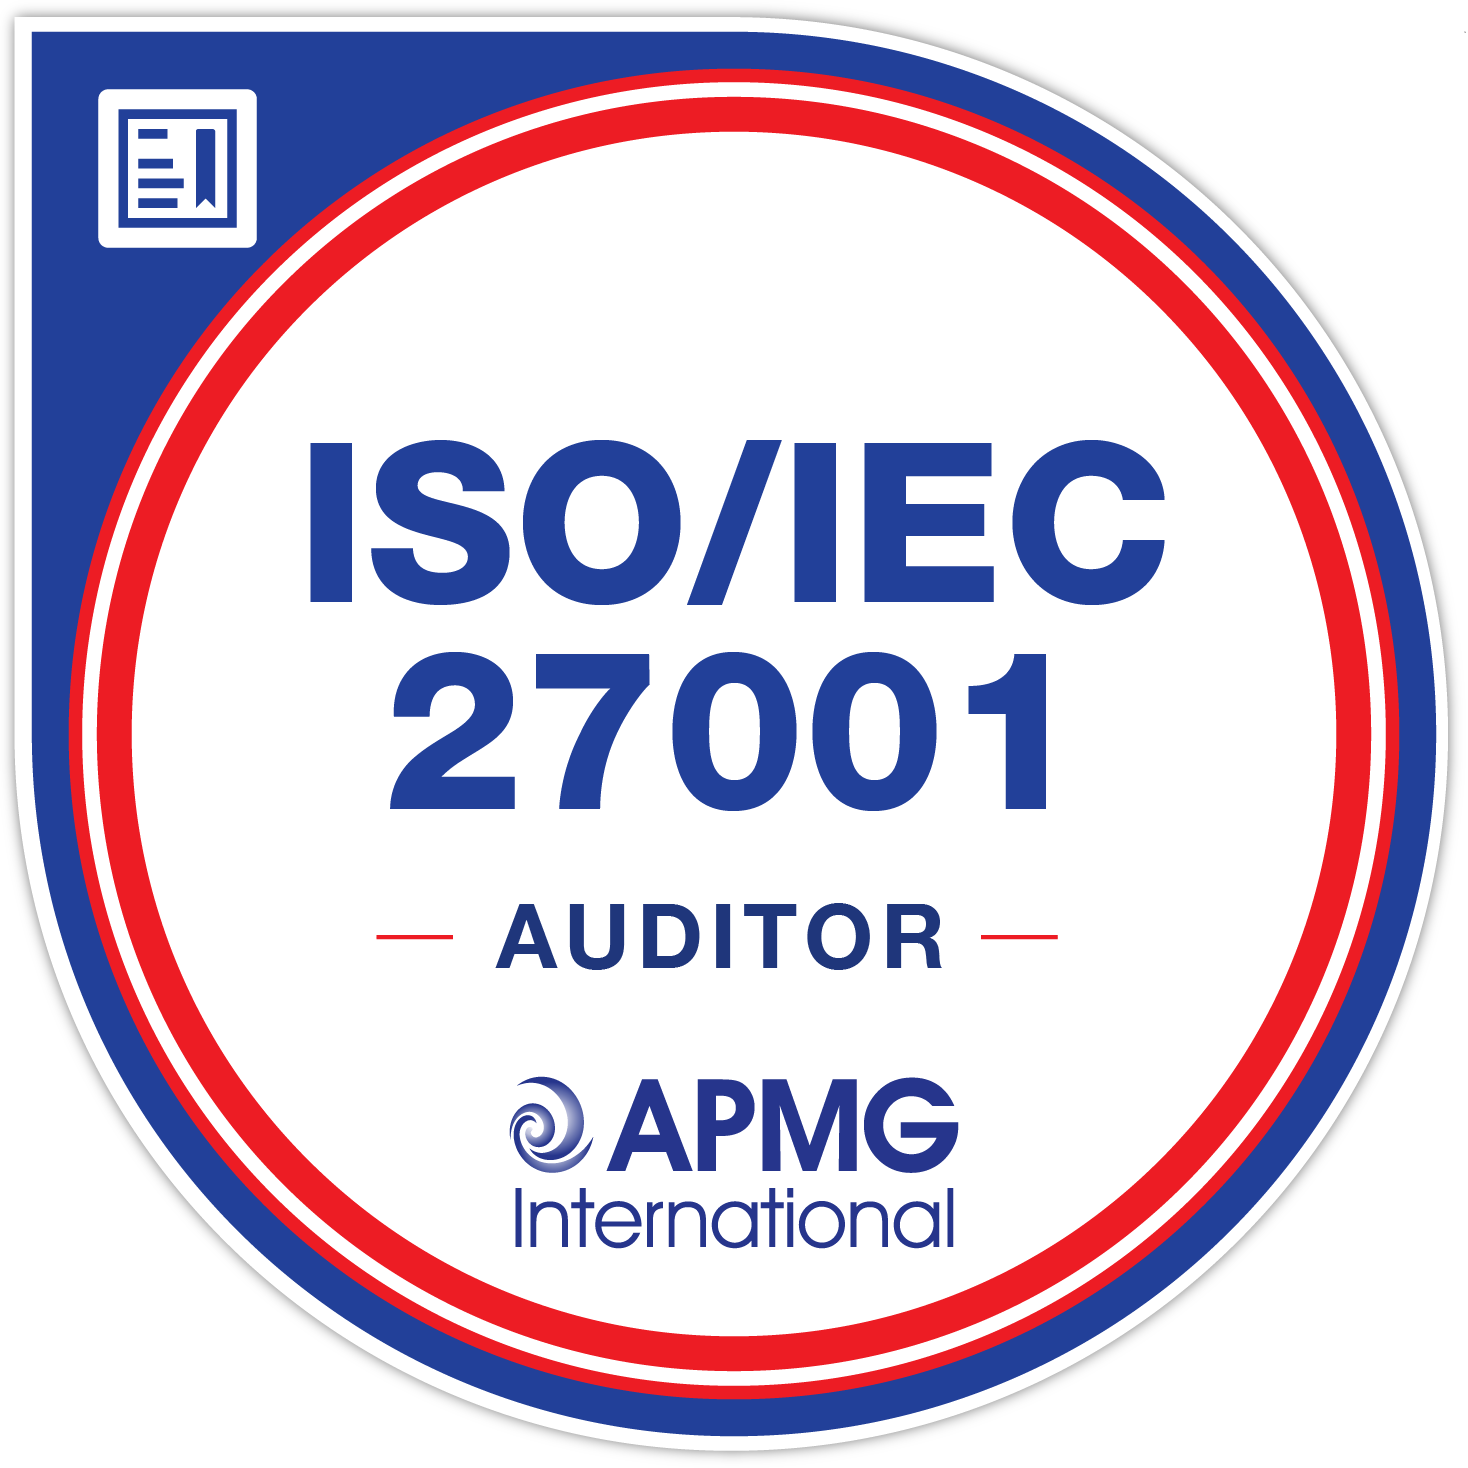 ISO/IEC 27001 Auditor